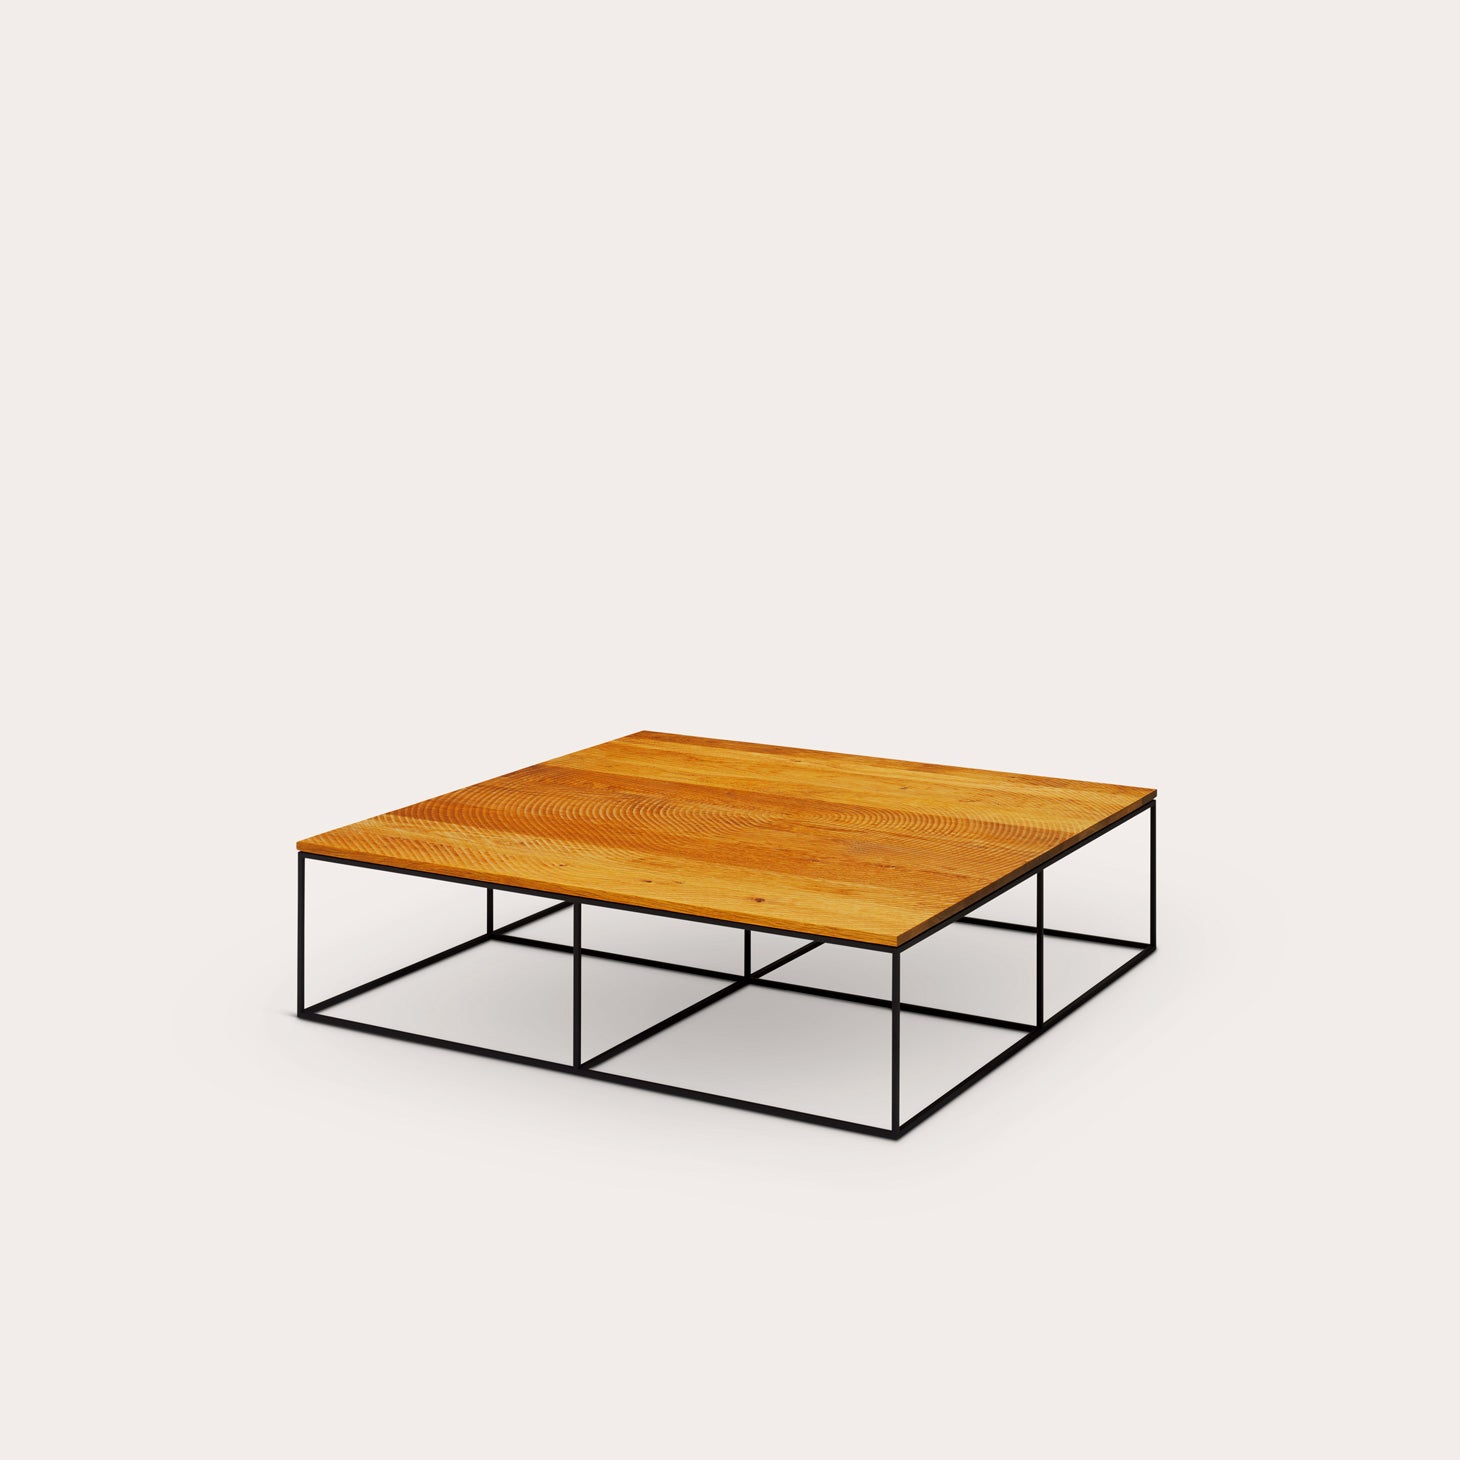 Log Coffee Table Tables Roderick Vos Designer Furniture Sku: 247-230-10332